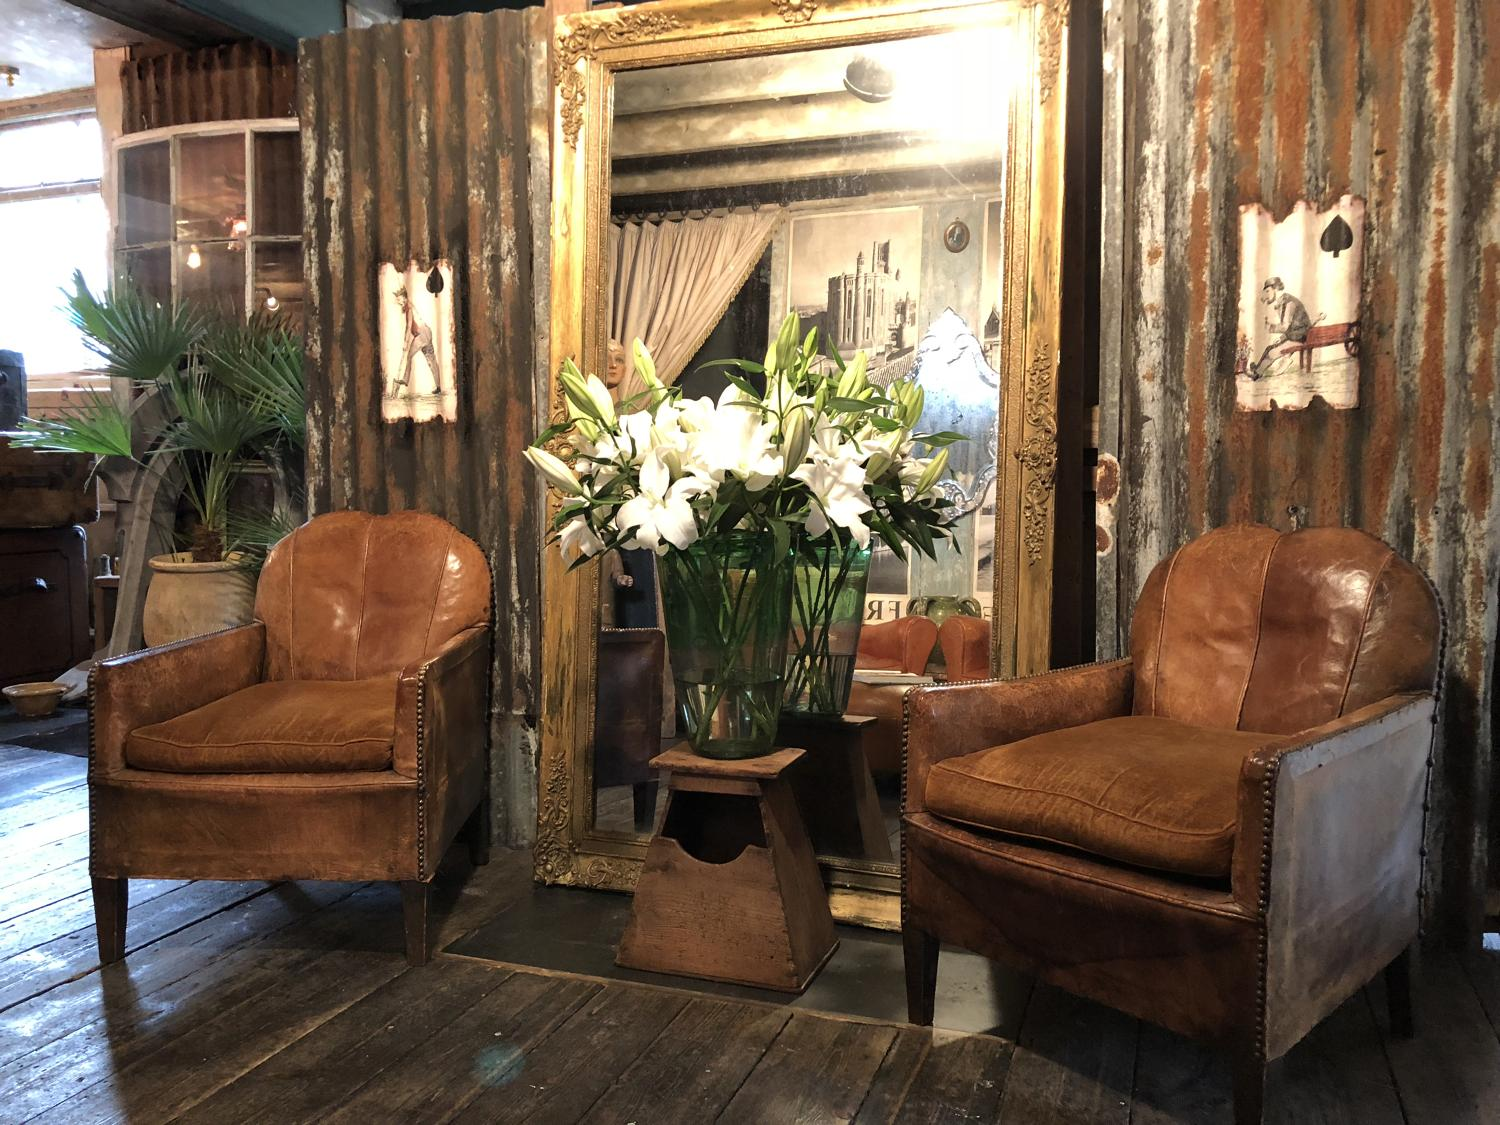 Exquisite pair of small French club/salon leather chairs c 1900